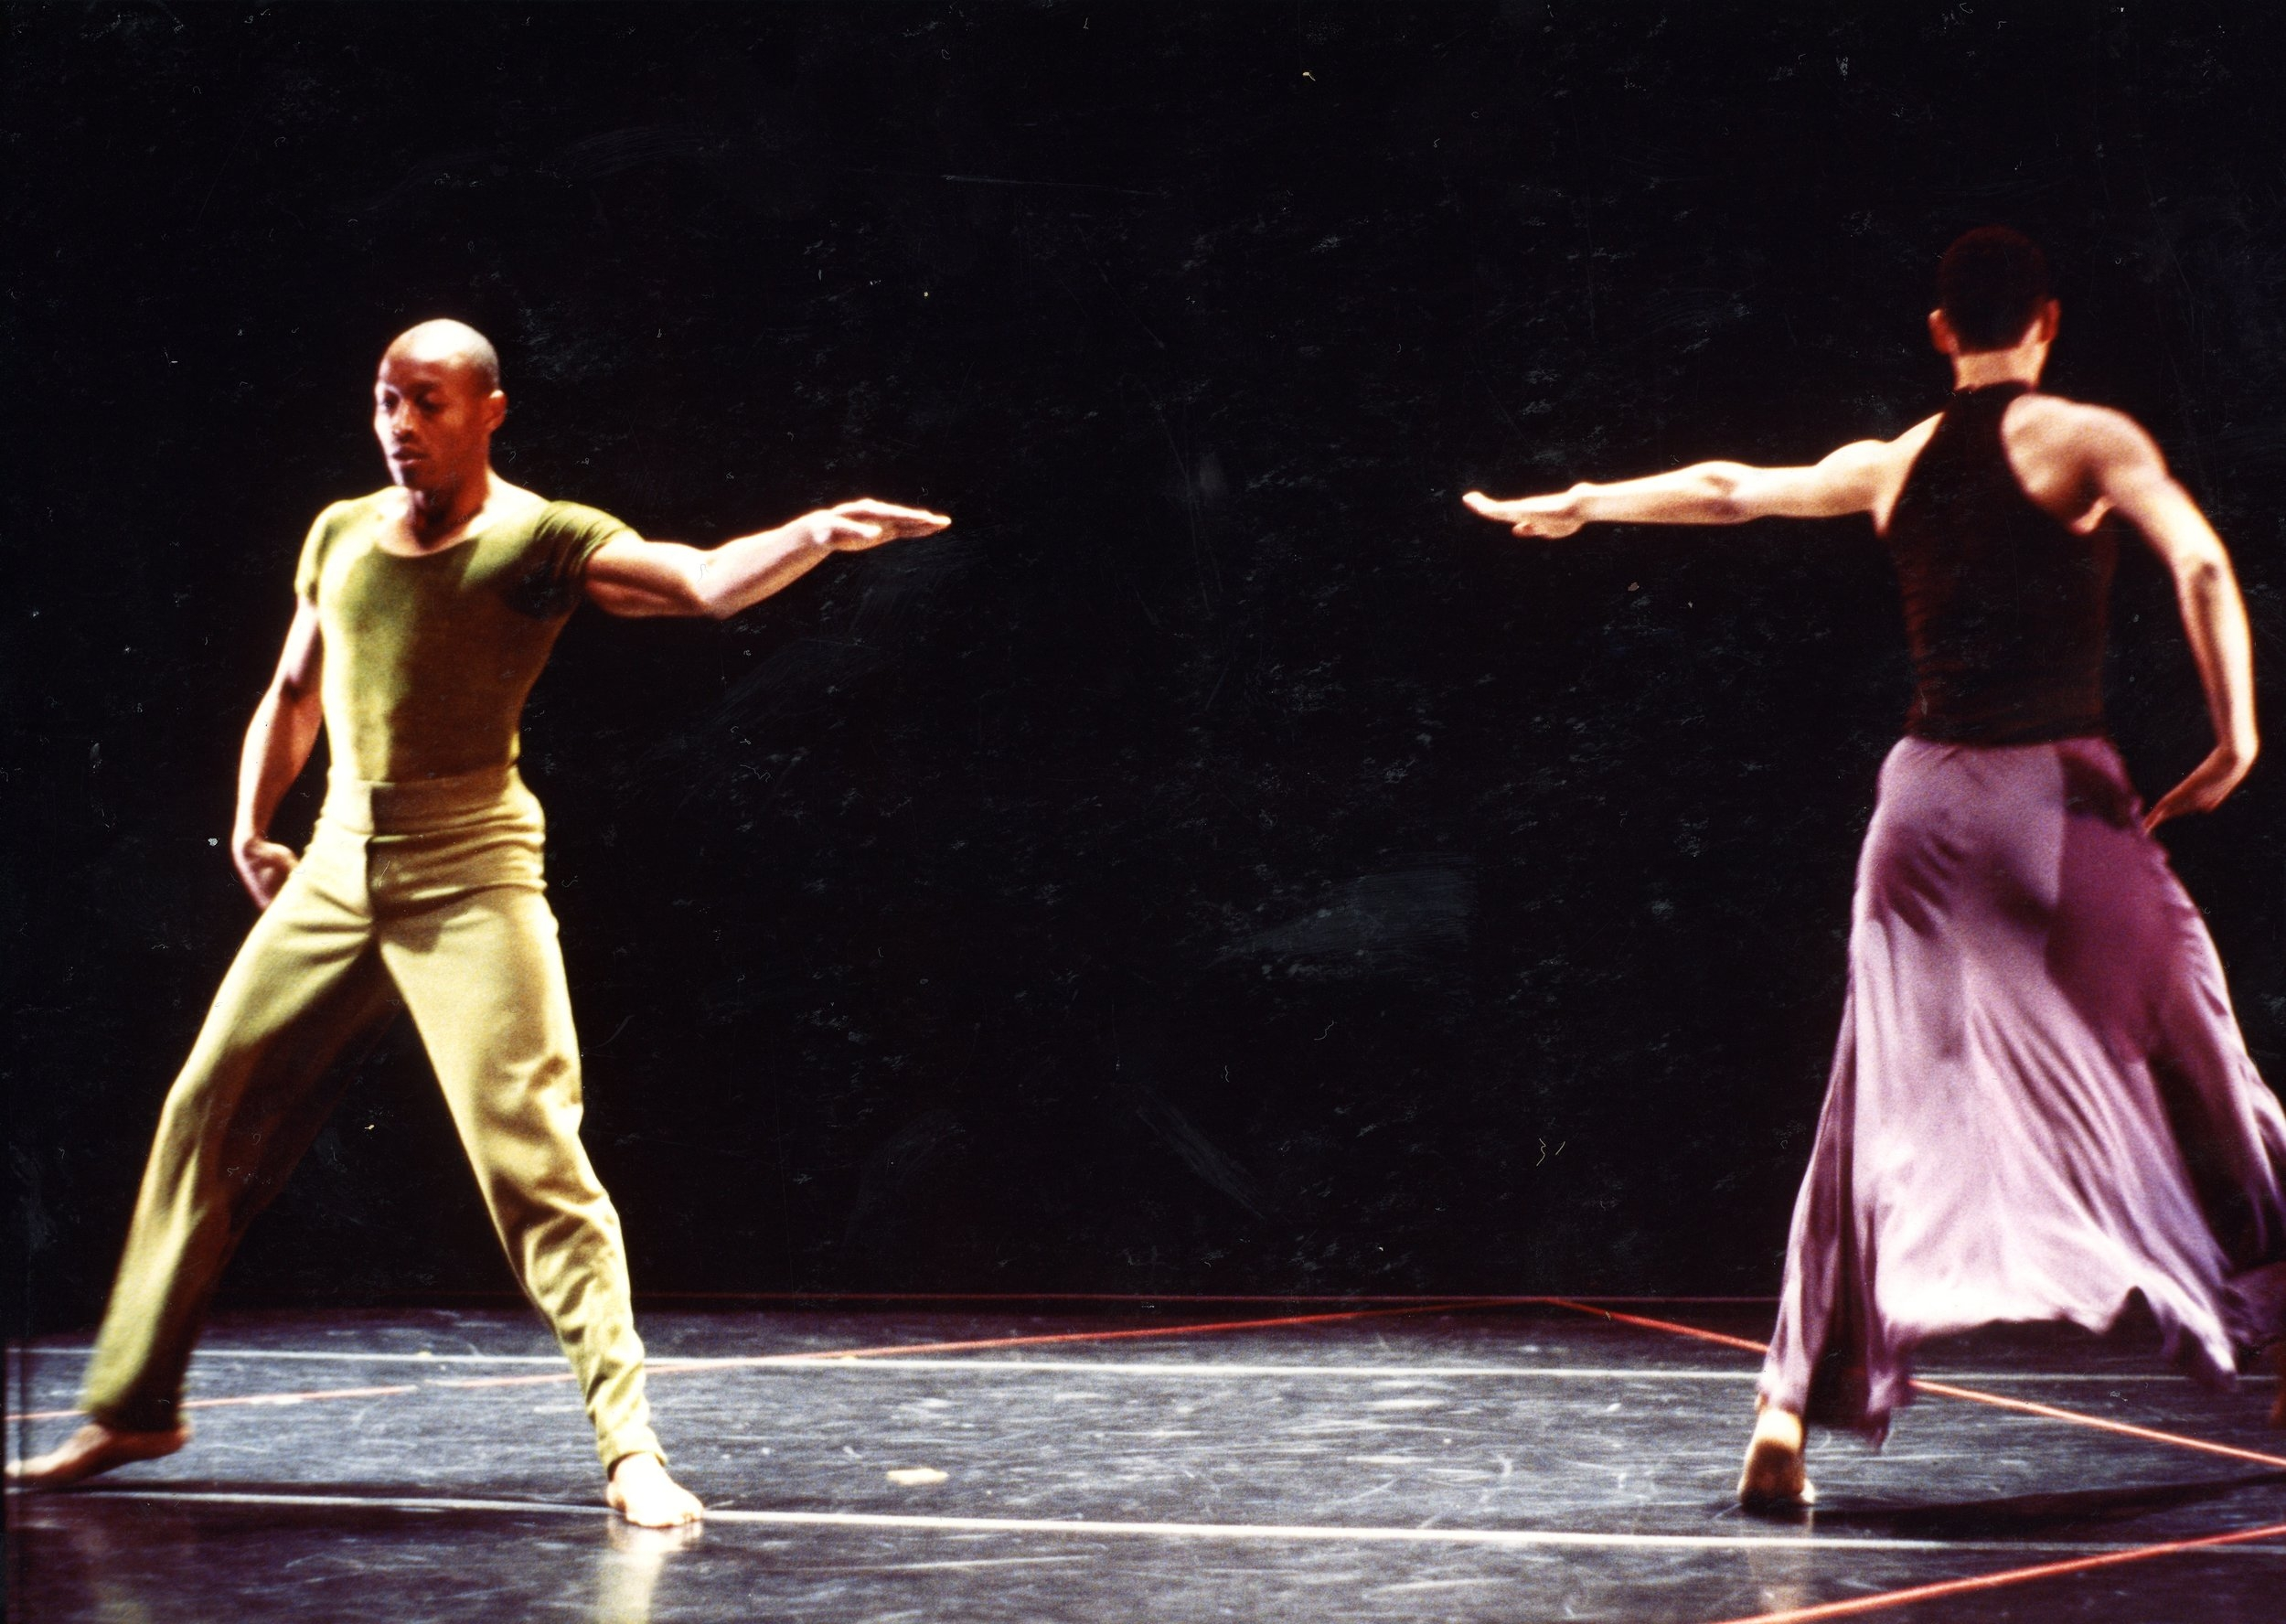 Bill T Jones and Arnie Zane dance company